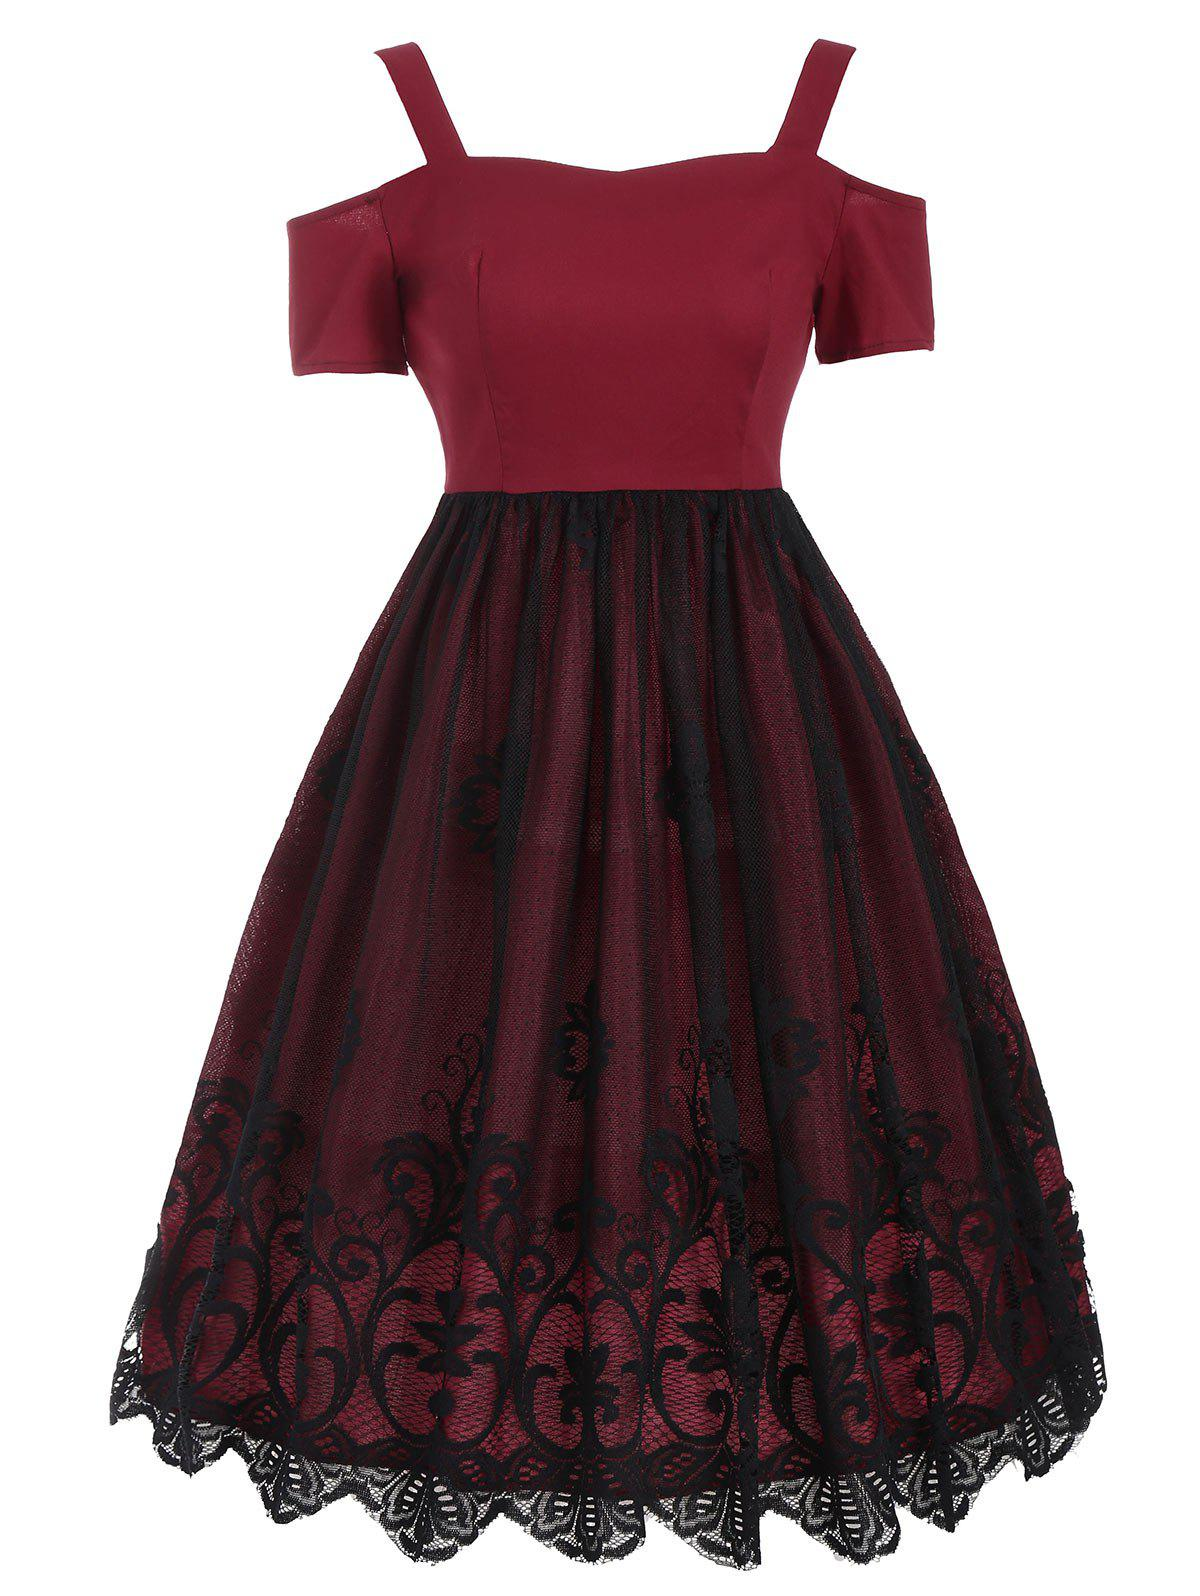 Vintage Lace Trim Fit and Flare Dress - RED S